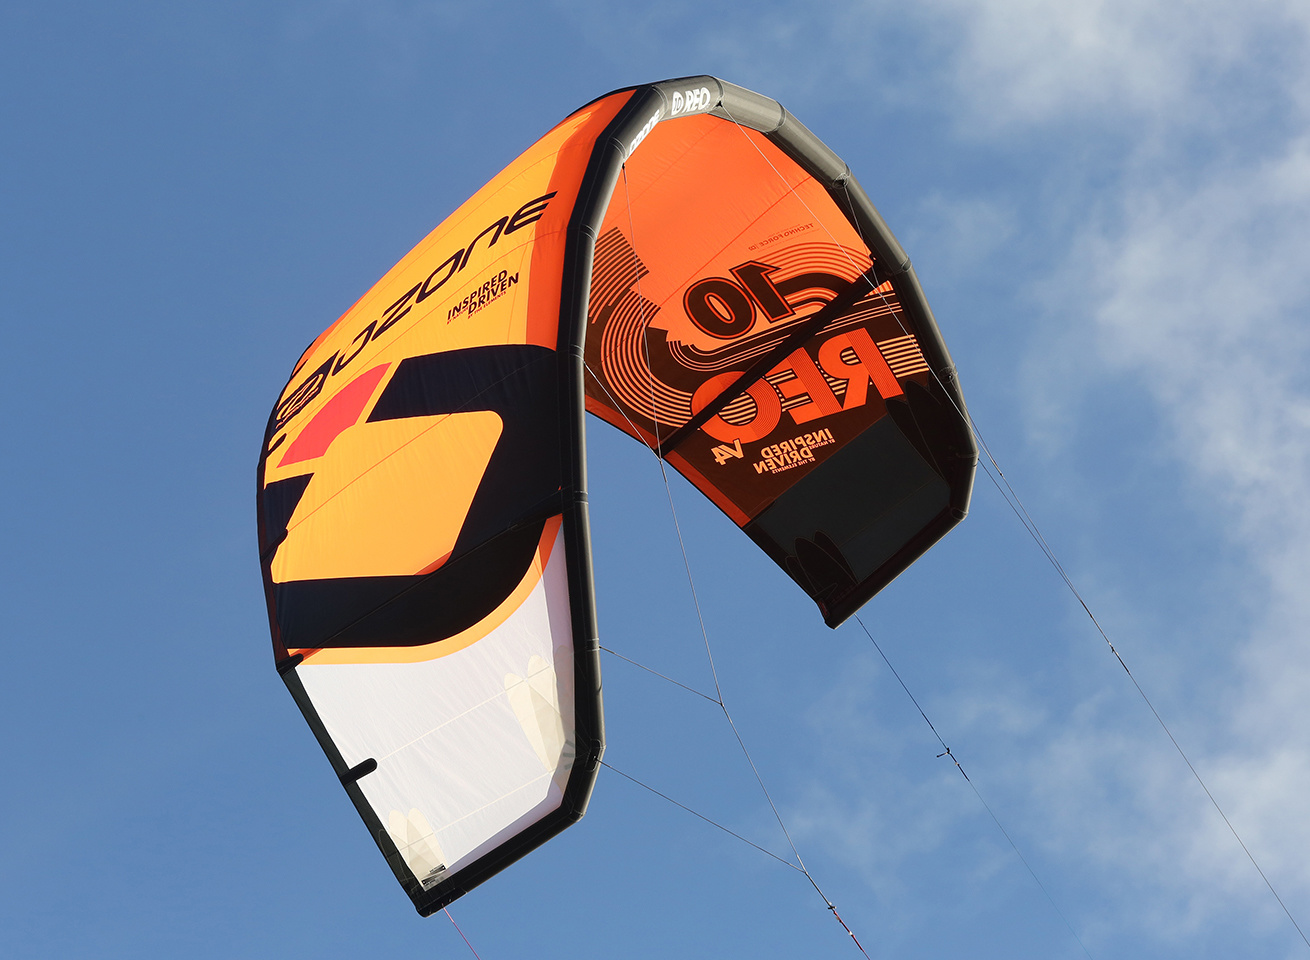 fly the ozone kites in antigua at 40knots